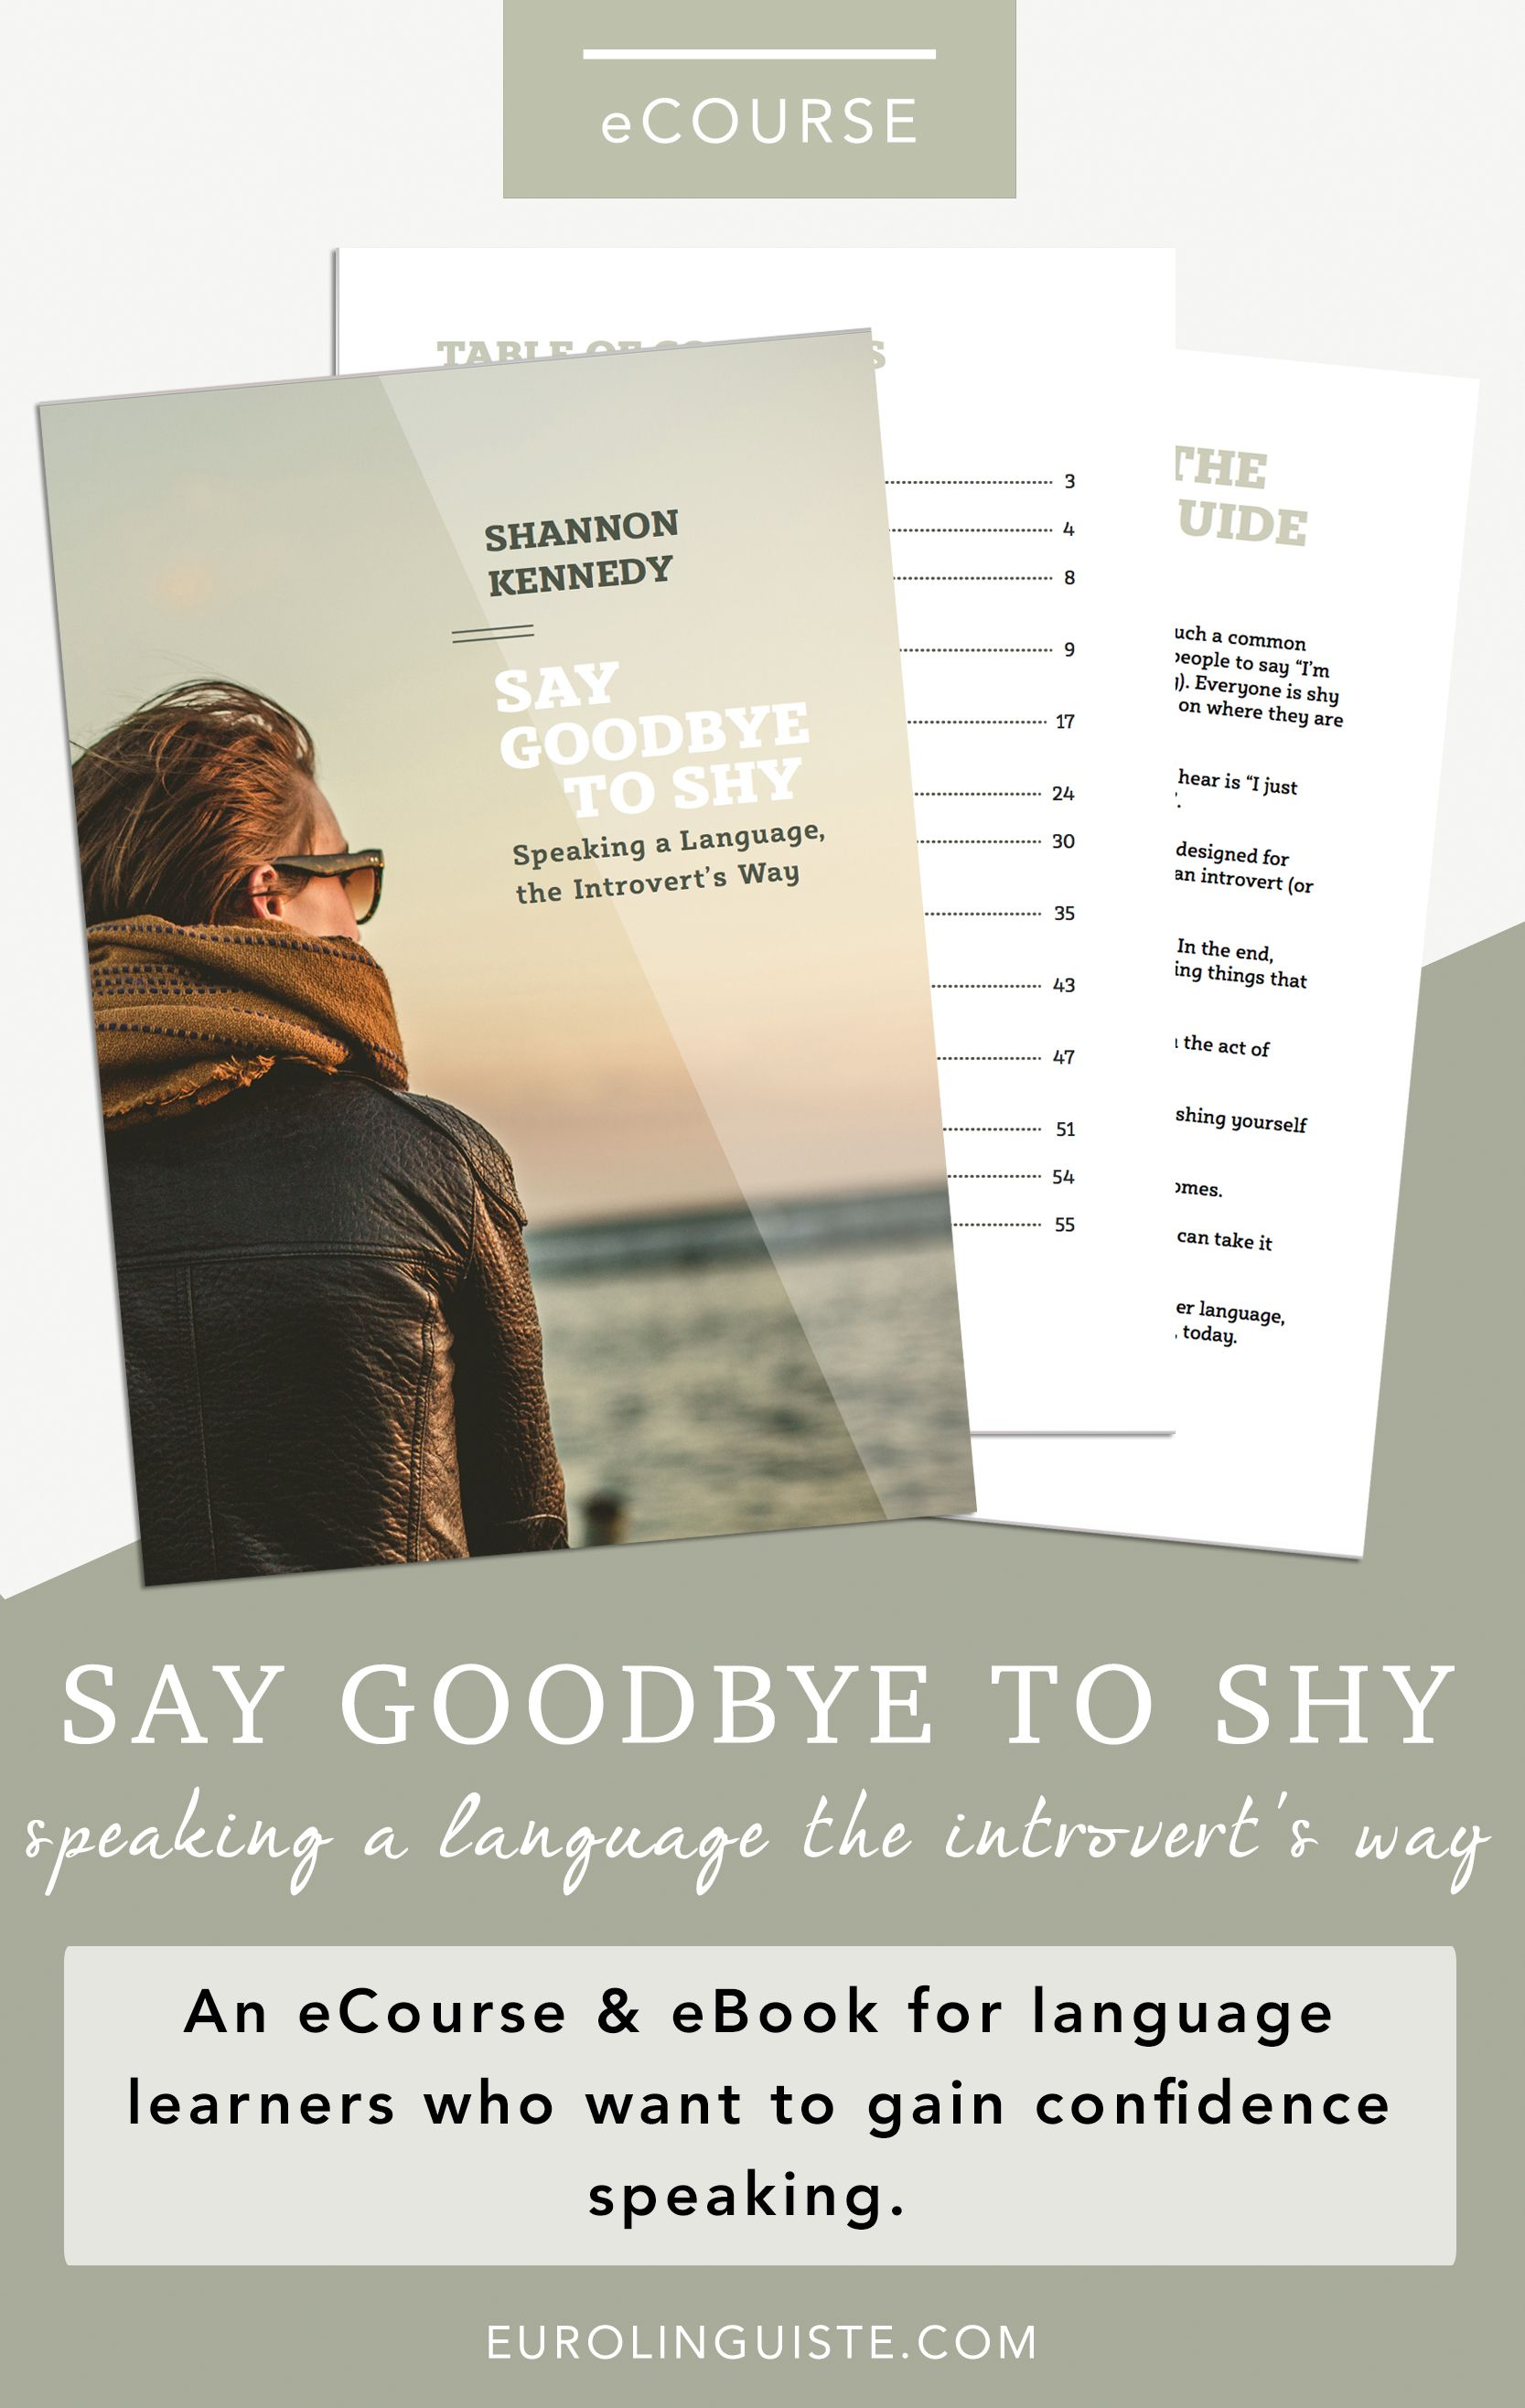 Introducing my new ecourse for language learners say